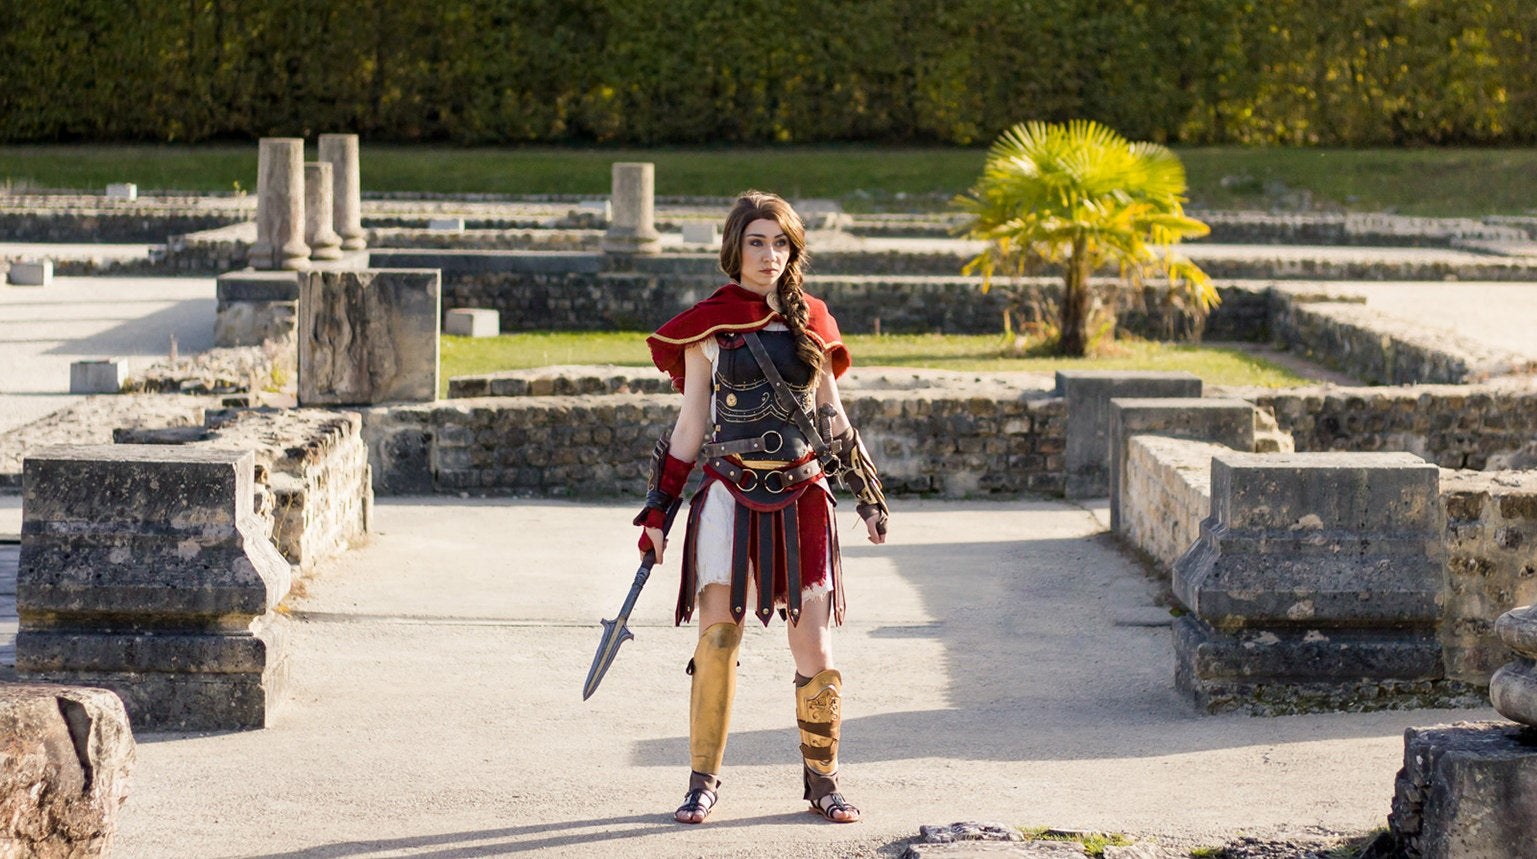 Assassin S Creed Odyssey Cosplay Is Looking Sharp